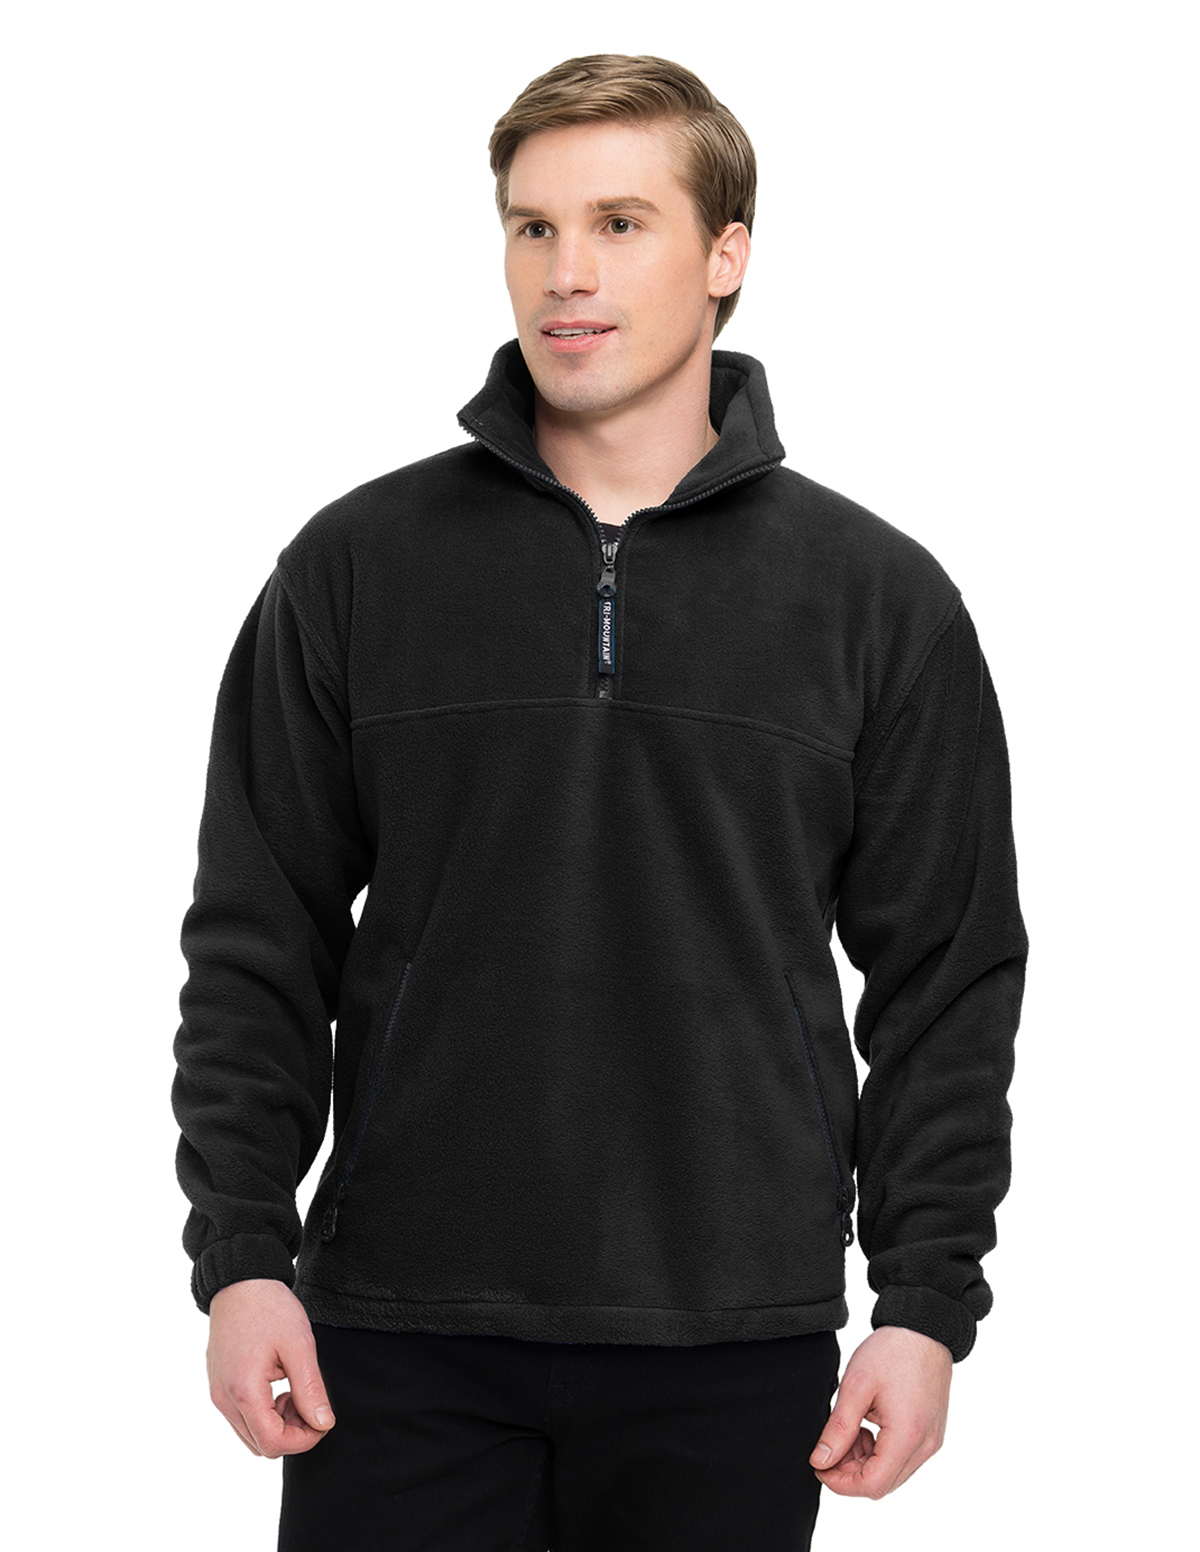 Viking 7550 Panda Fleece 1/4 Zip Pullover, 2X-Large, Black/Black